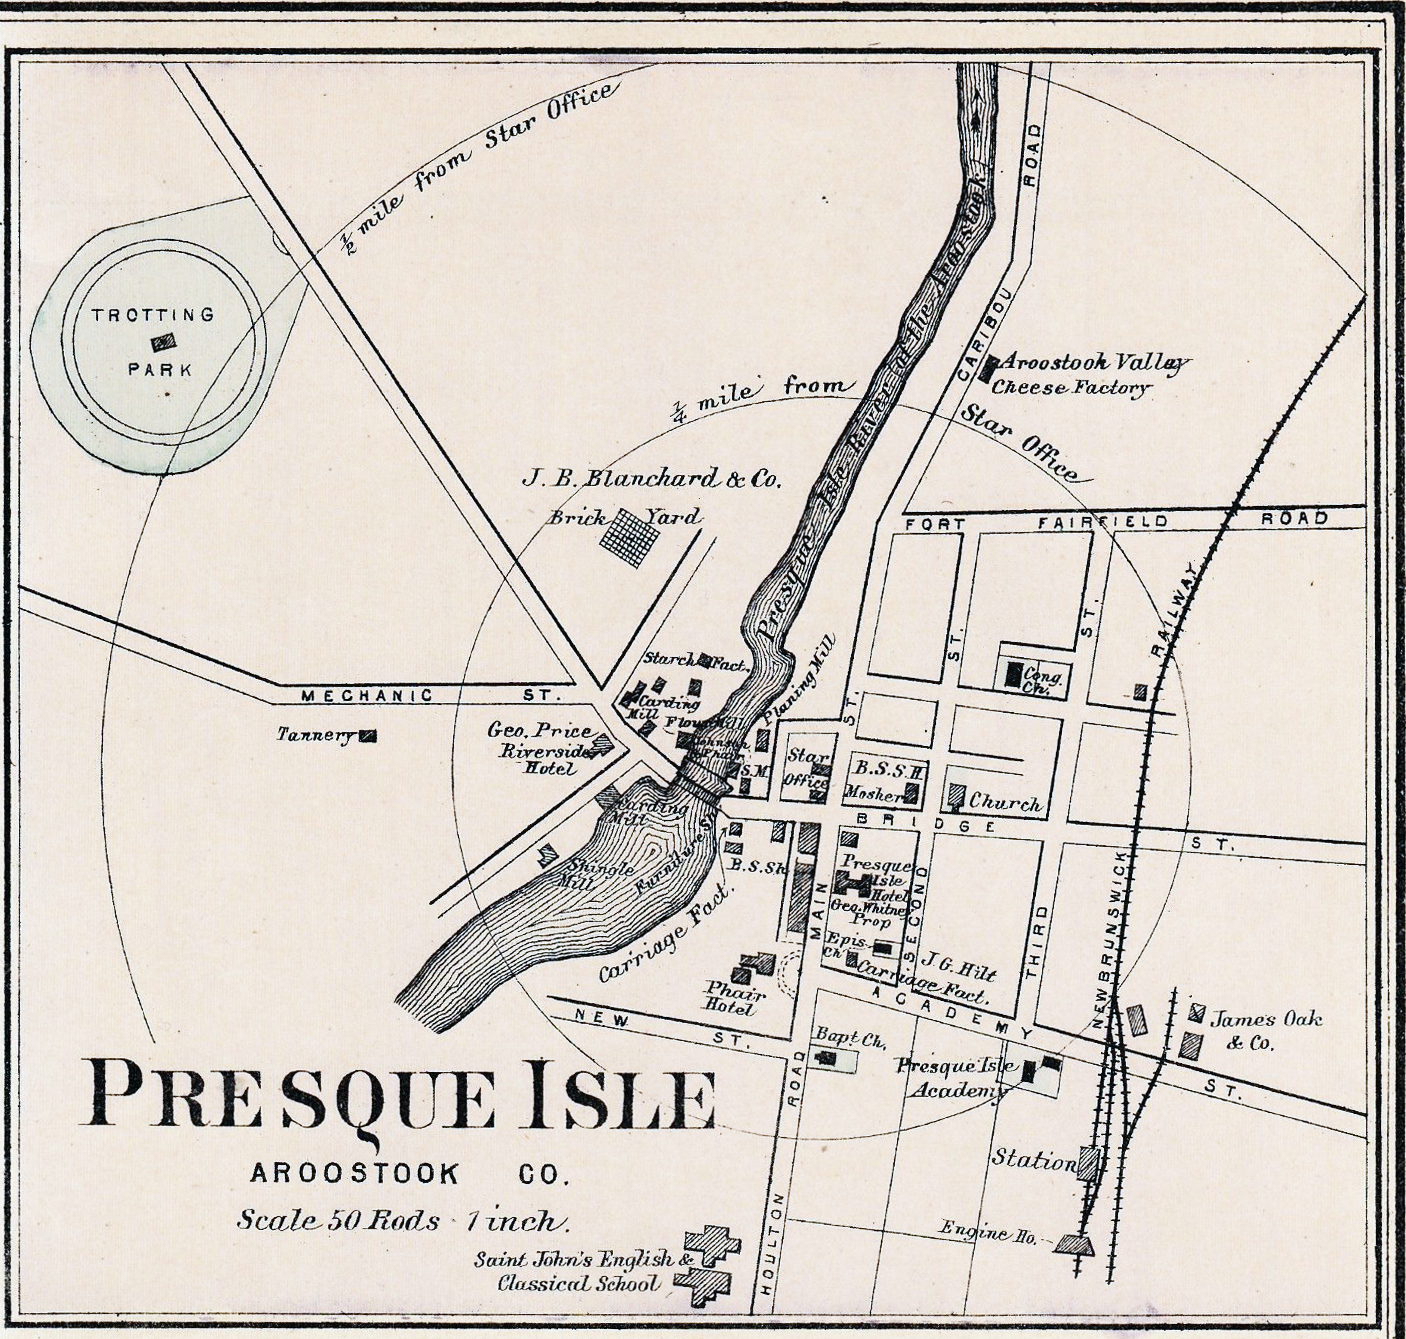 The Presque Isle Trotting Park Association Incorporated in the Year 1868